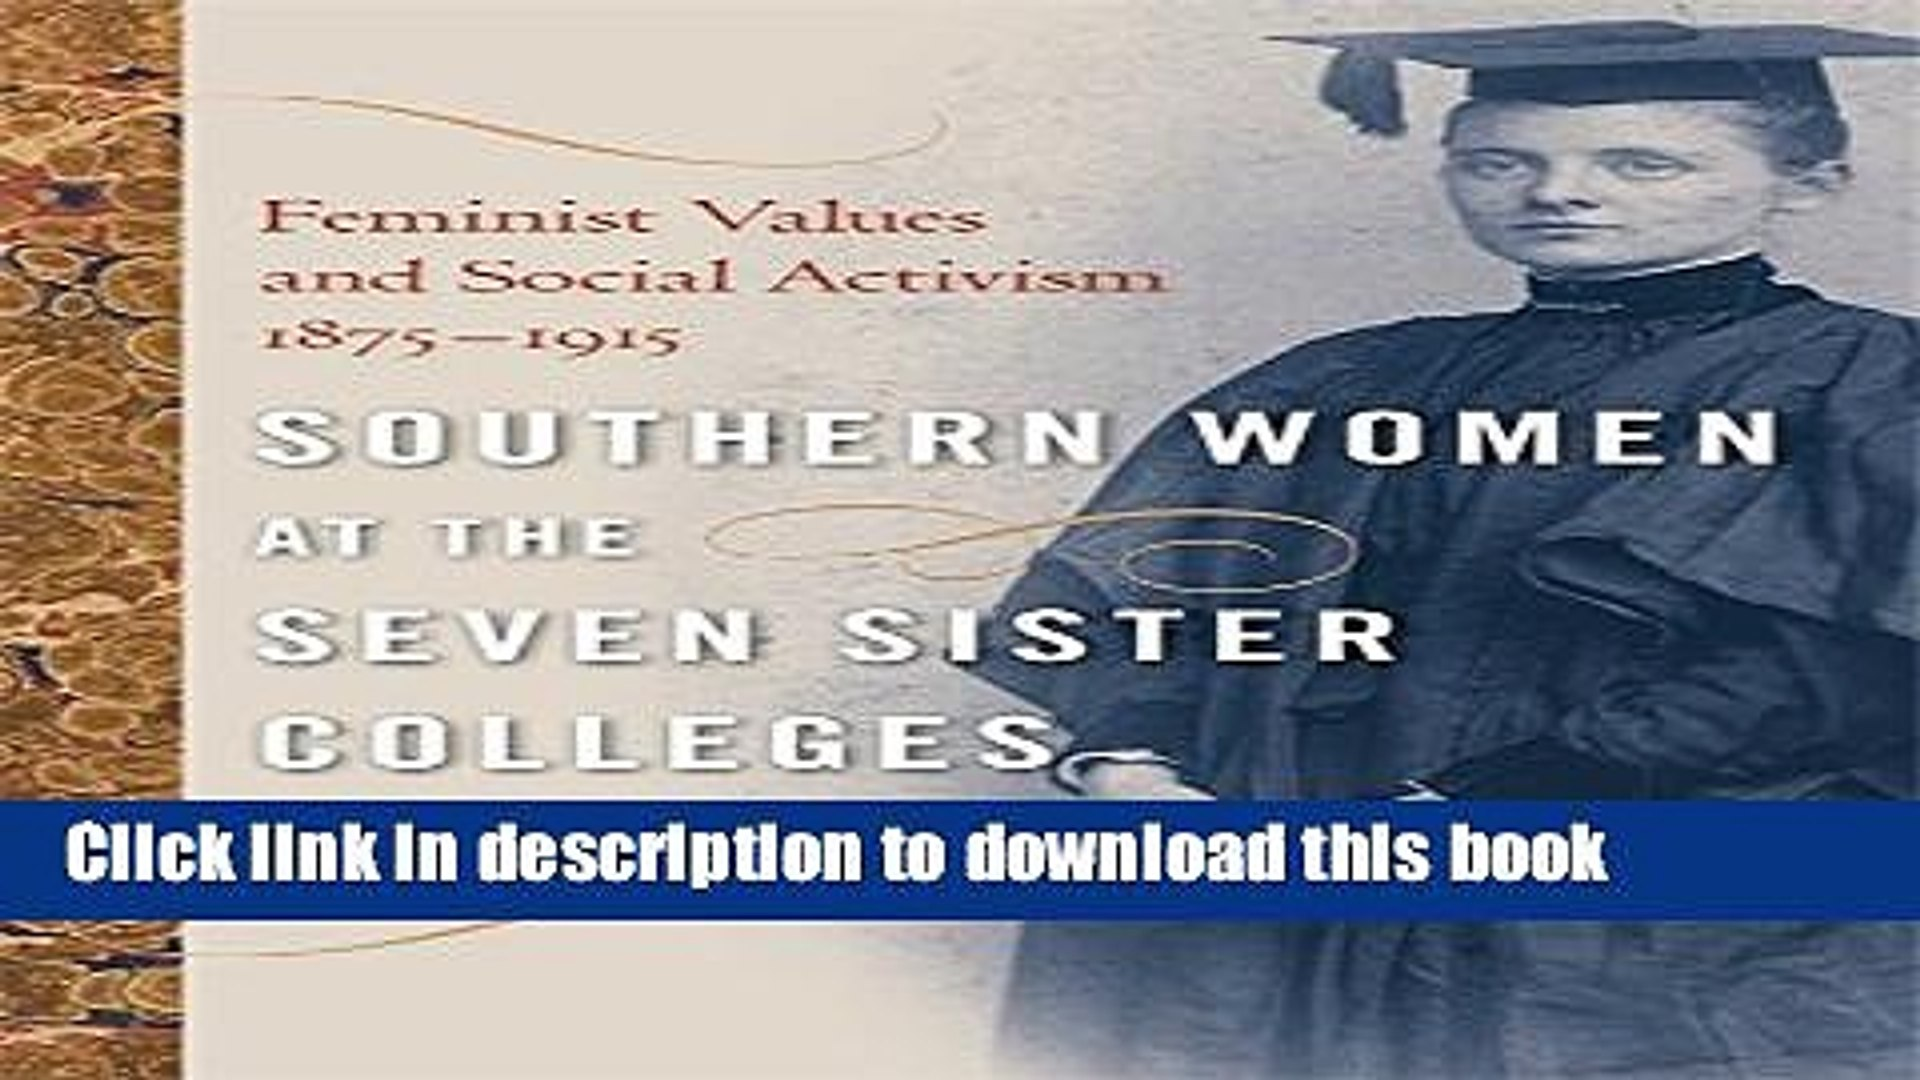 Read Southern Women at the Seven Sister Colleges: Feminist Values and Social Activism, 1875-1915